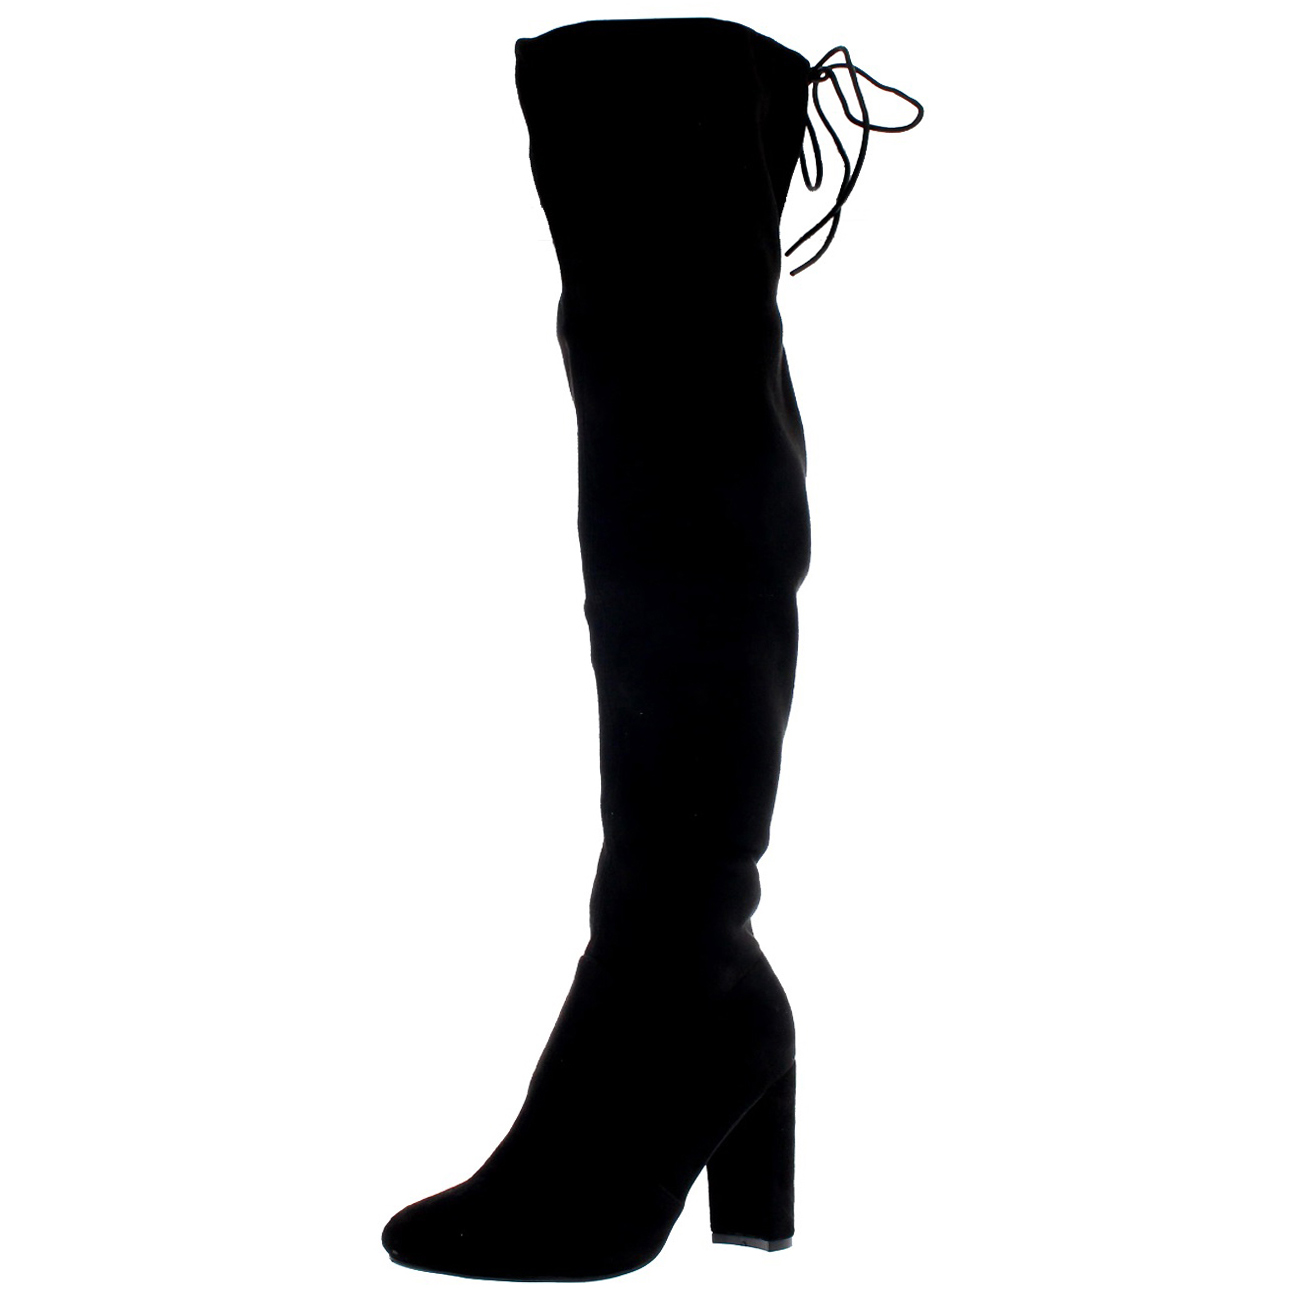 ASOS DESIGN Kera pointed thigh high boots. £ ASOS DESIGN Kalika over the knee boots. £ ASOS DESIGN Kaska flat studded over the knee boots. New Look Wide Fit Over The Knee Stiletto Heel Boot. £ ASOS DESIGN Wide Fit Kadi heeled over the knee boots. £ Dune Wide Fit Traviss Black Leather Riding Flat Boots.